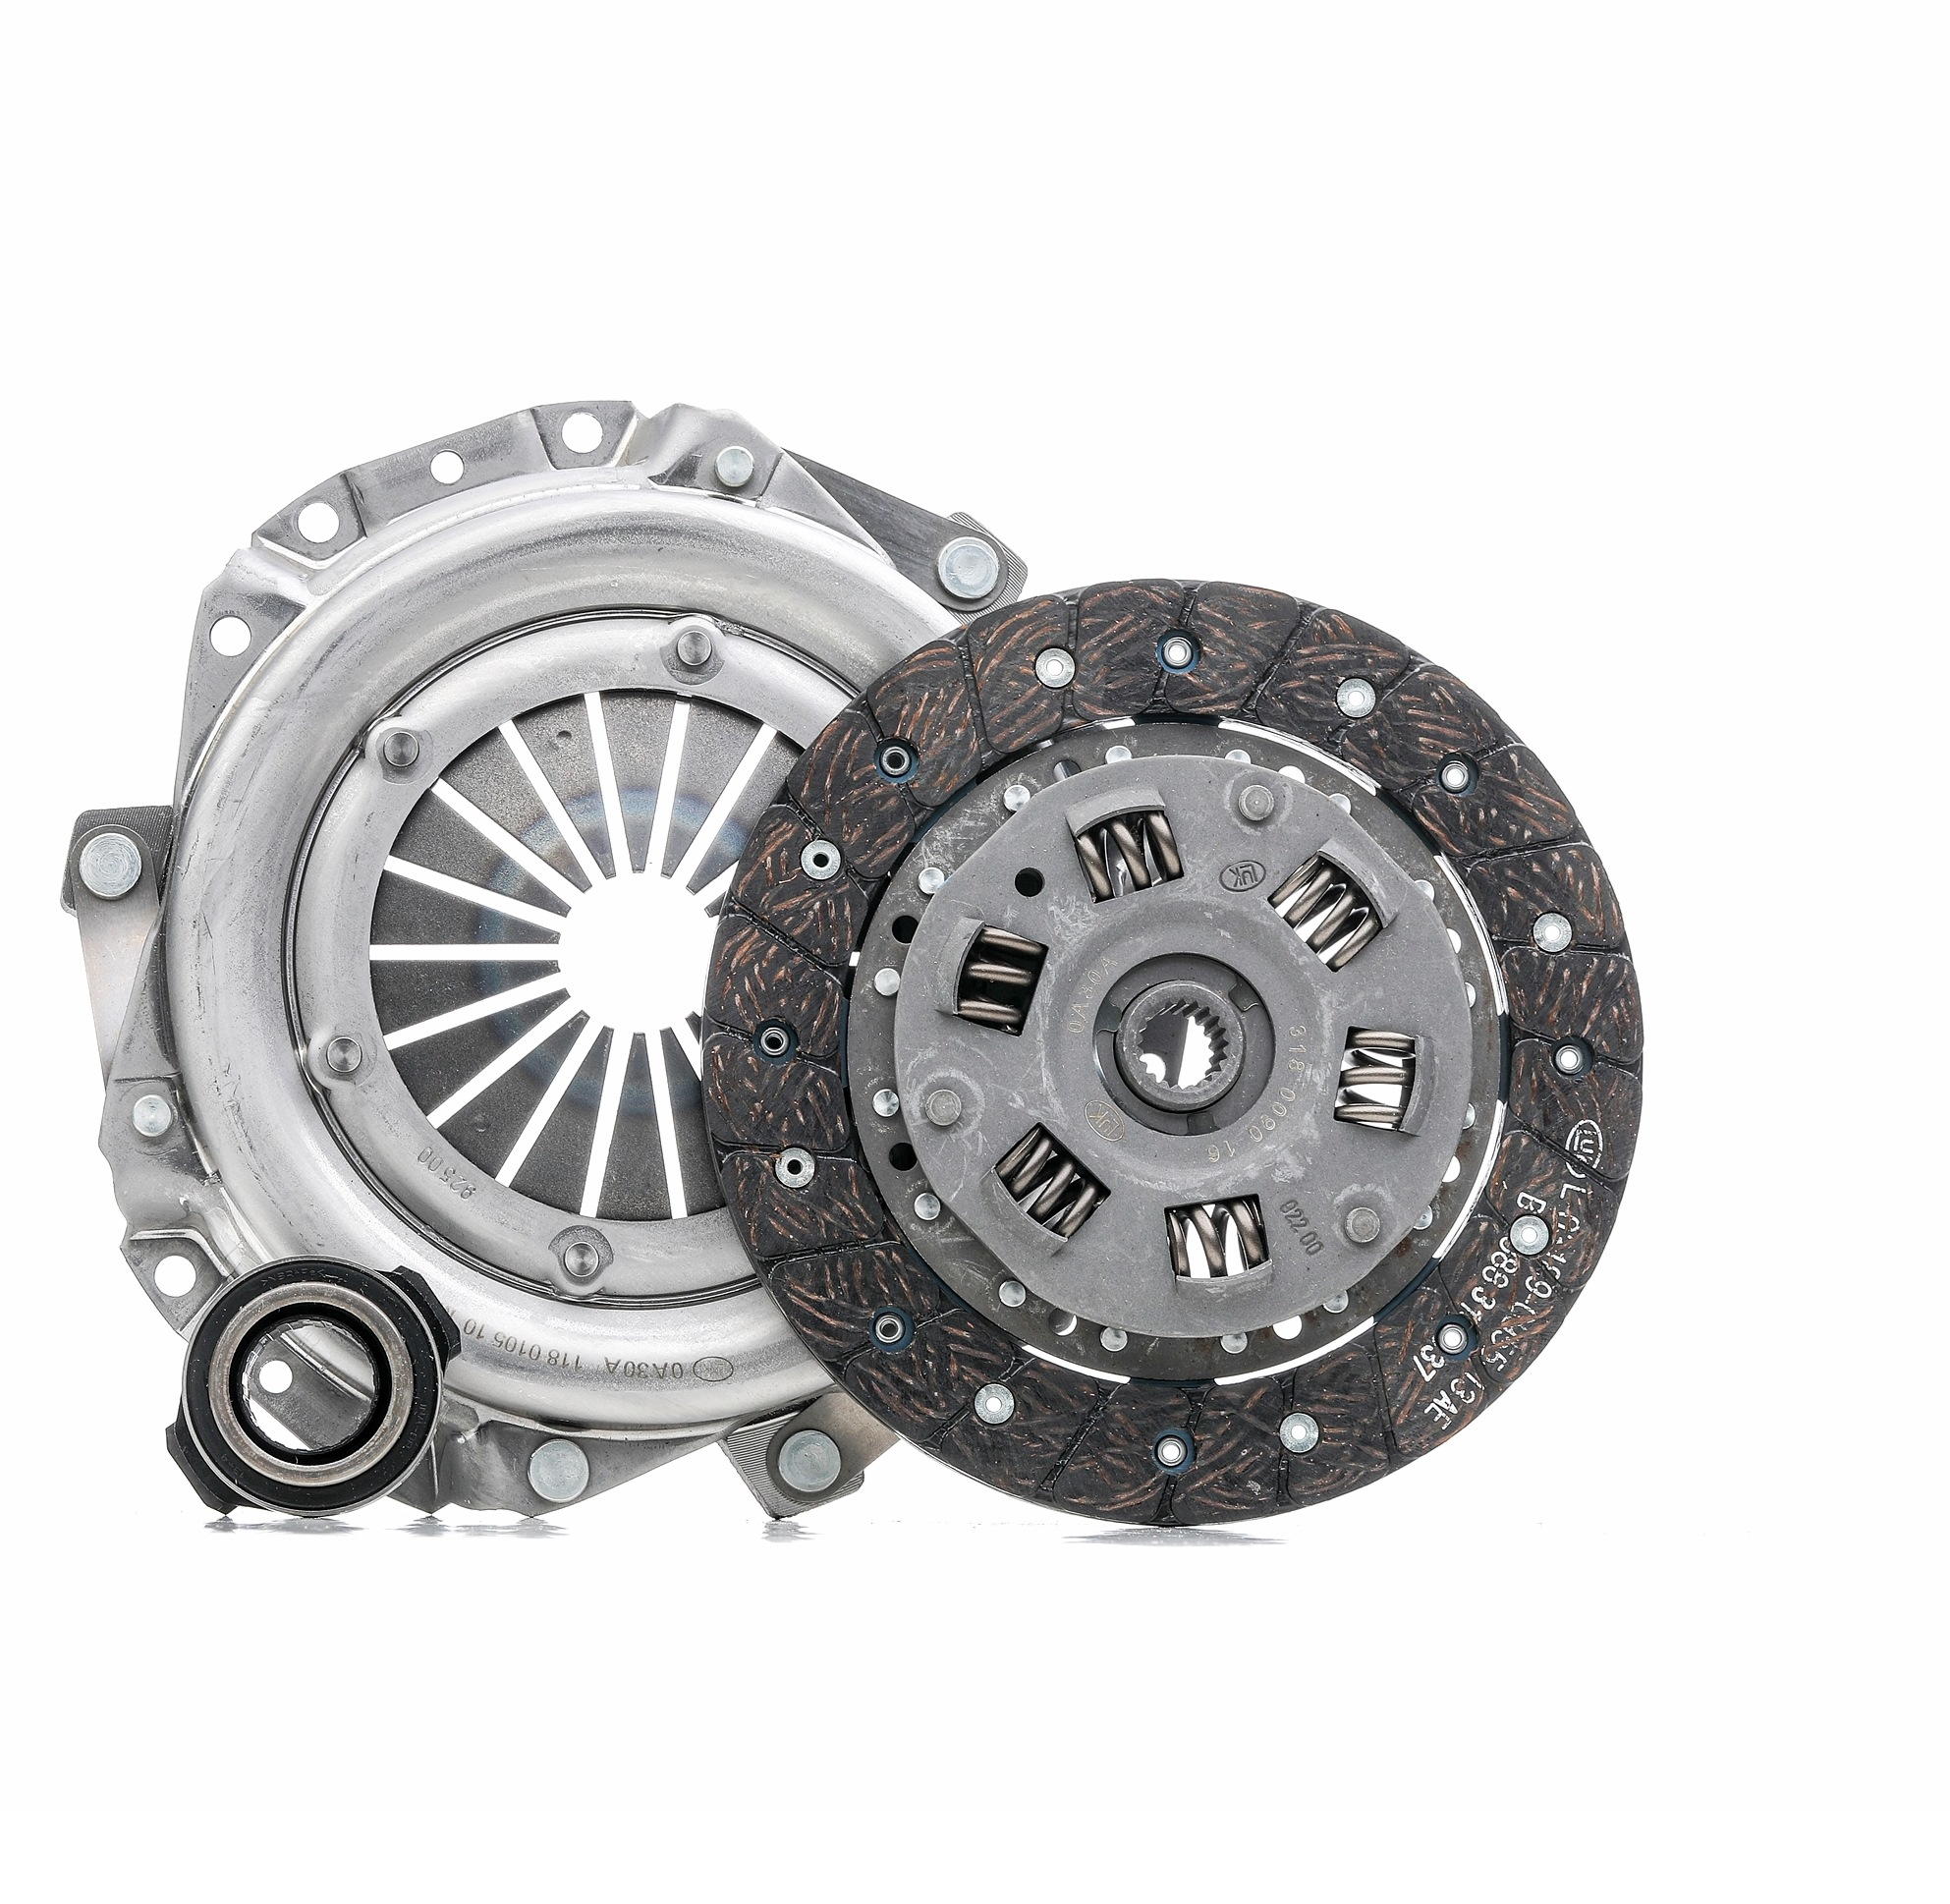 Complete clutch kit LuK 618 0171 06 rating